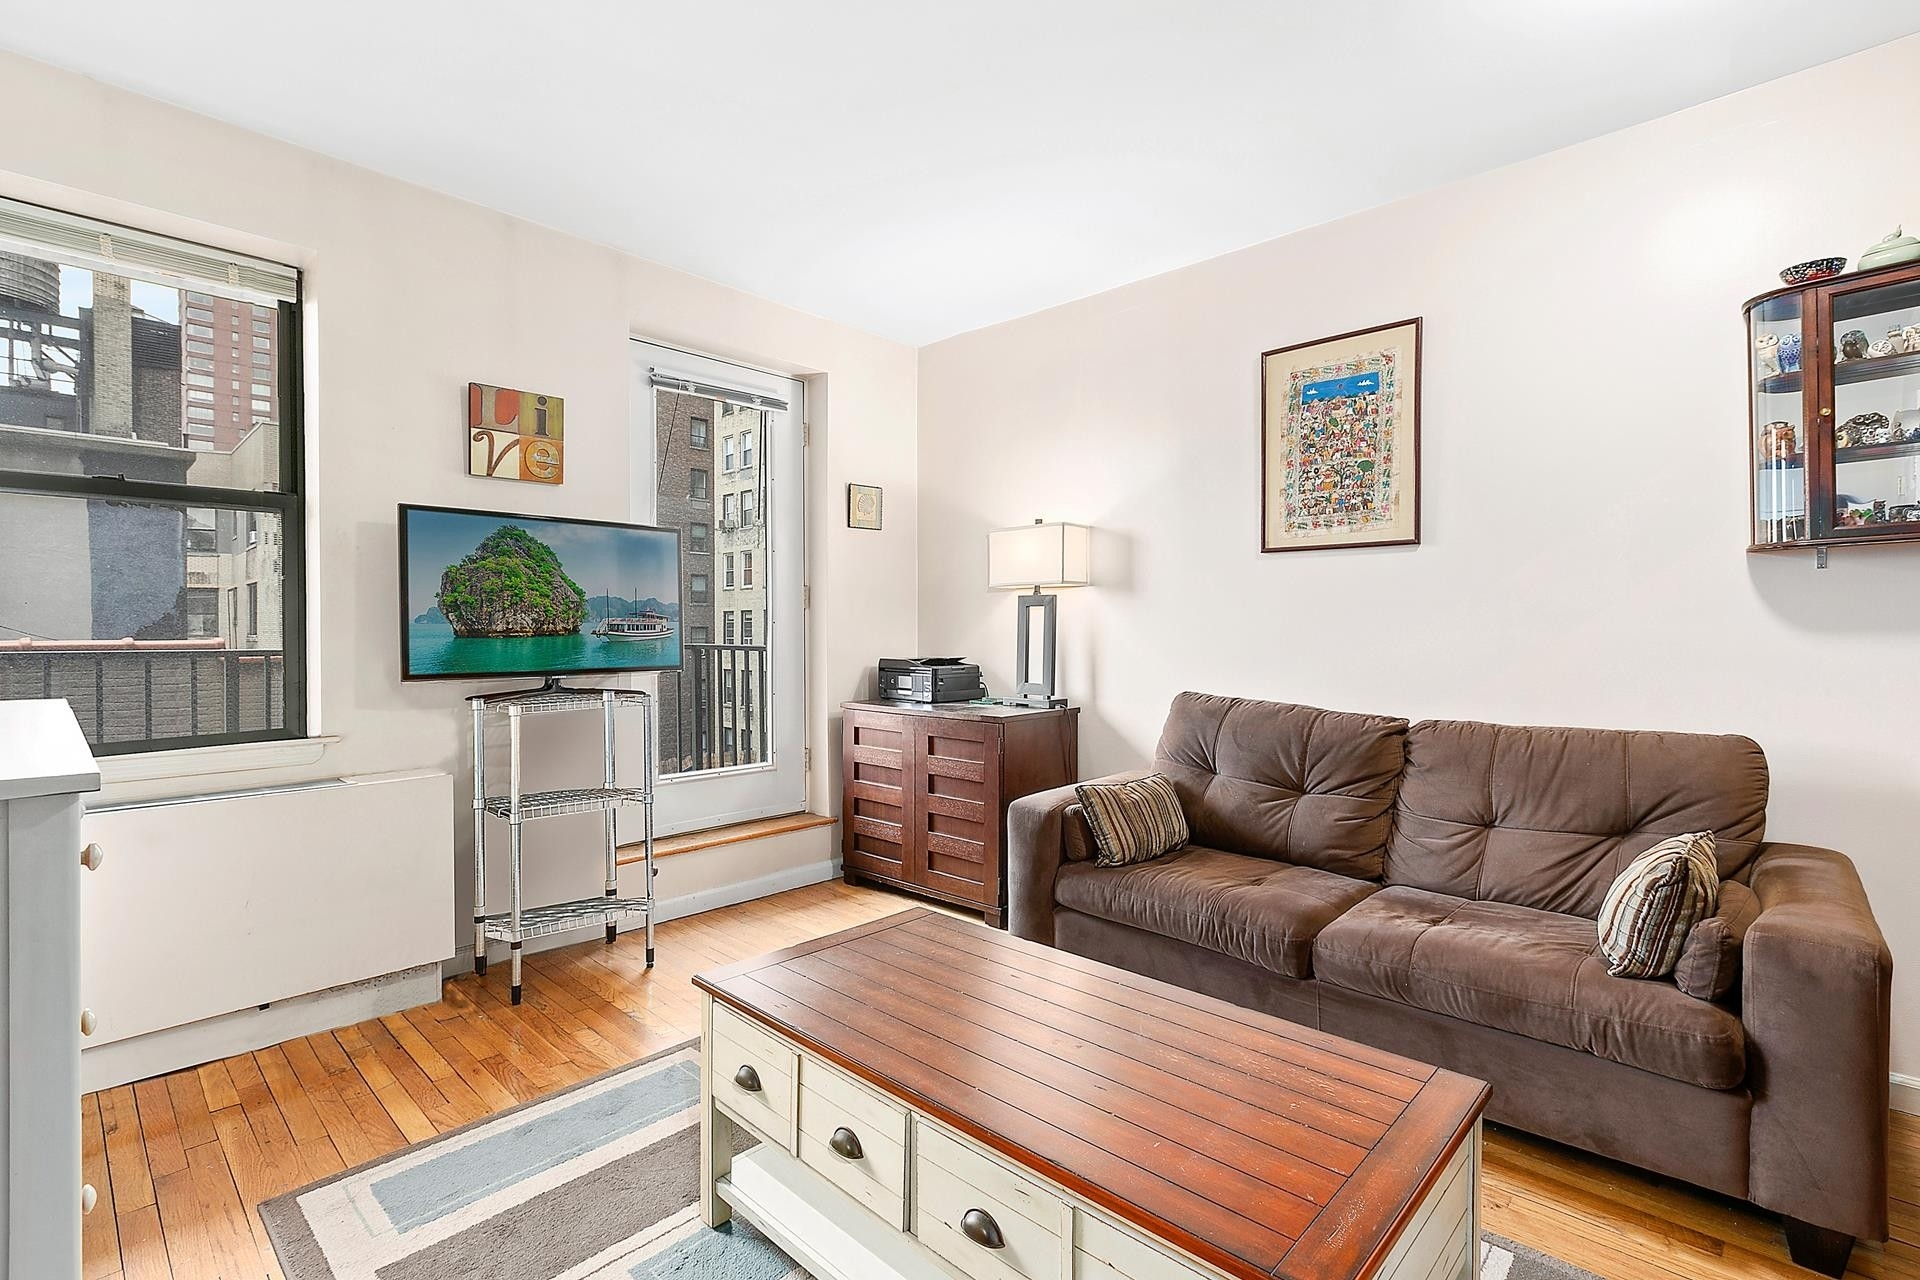 Property at THE CHESTERFIELD, 186 W 80TH ST , 7M Upper West Side, New York, NY 10024